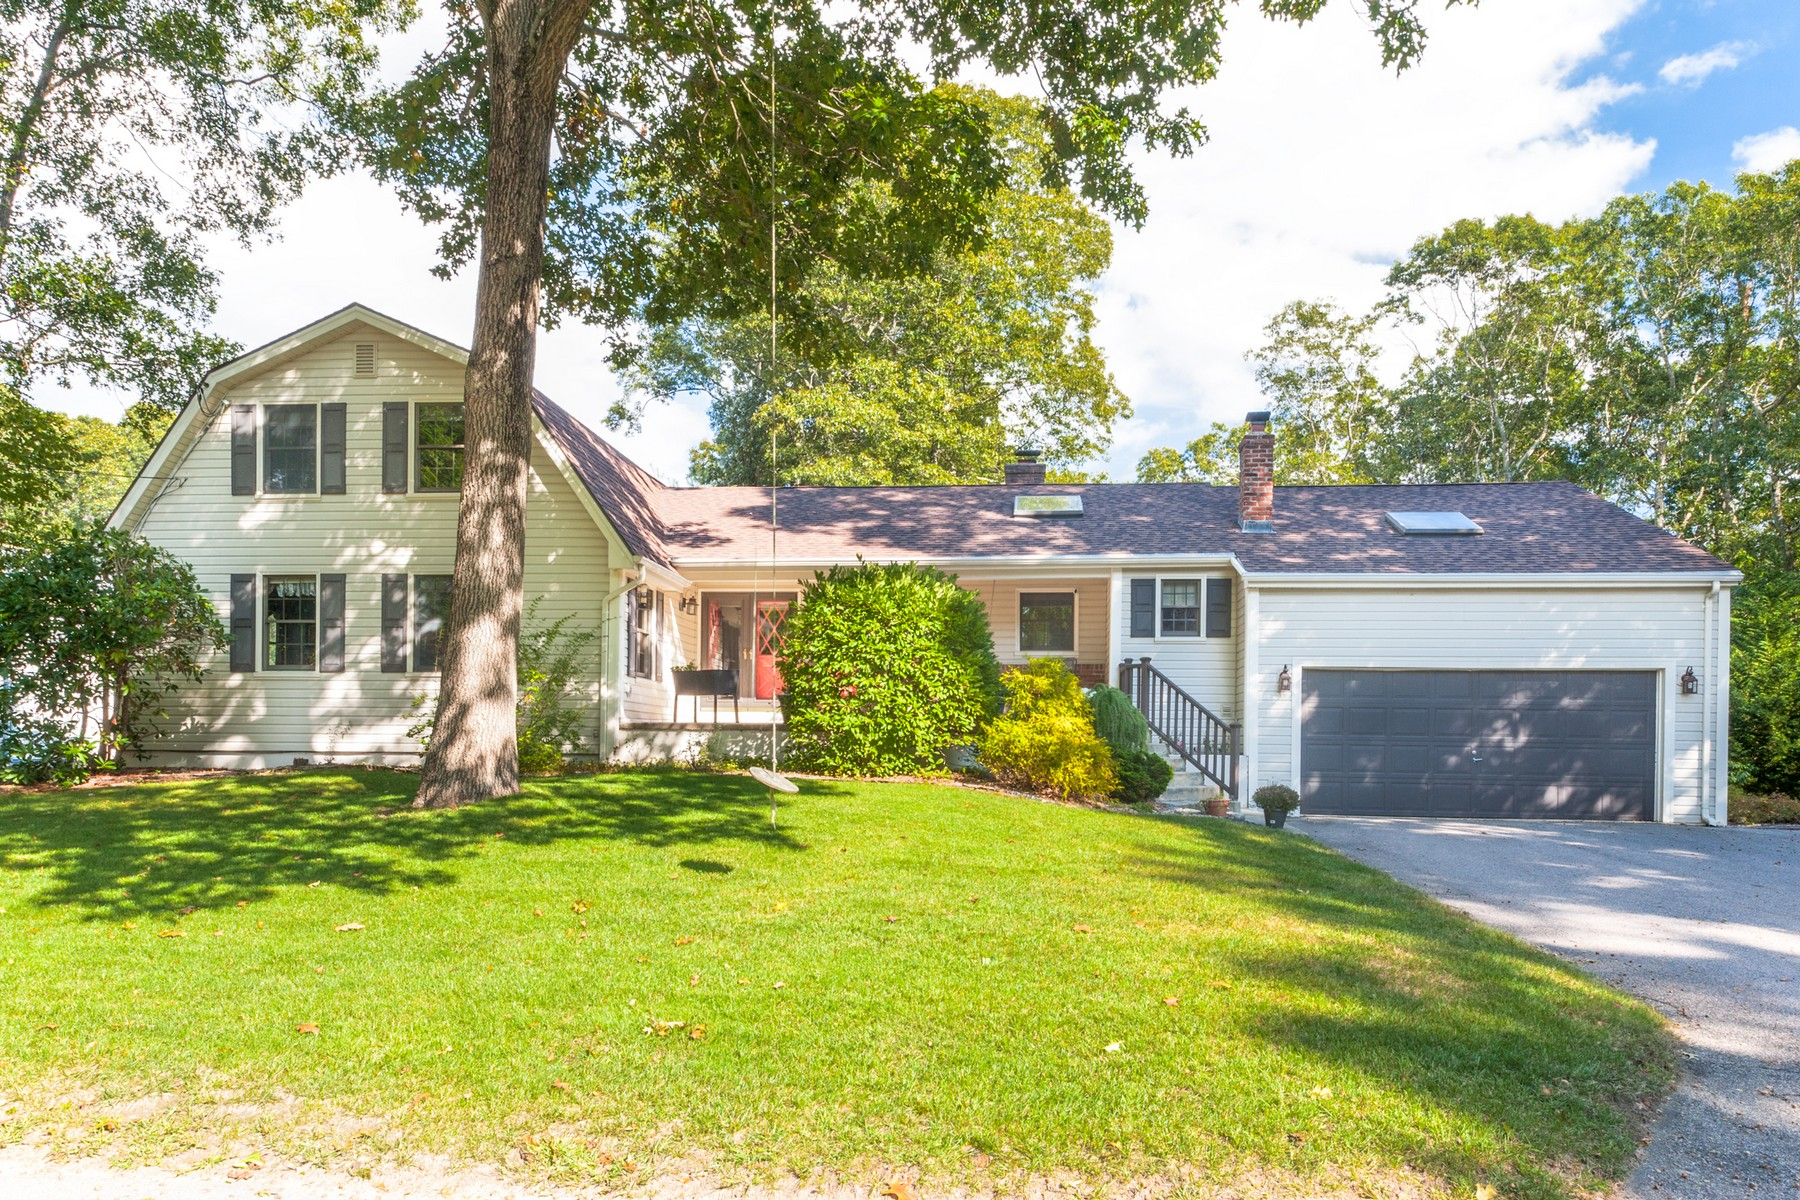 Single Family Home for Sale at Private Beach Association at Giants Neck 129 S Edgewood Road East Lyme, Connecticut 06357 United States